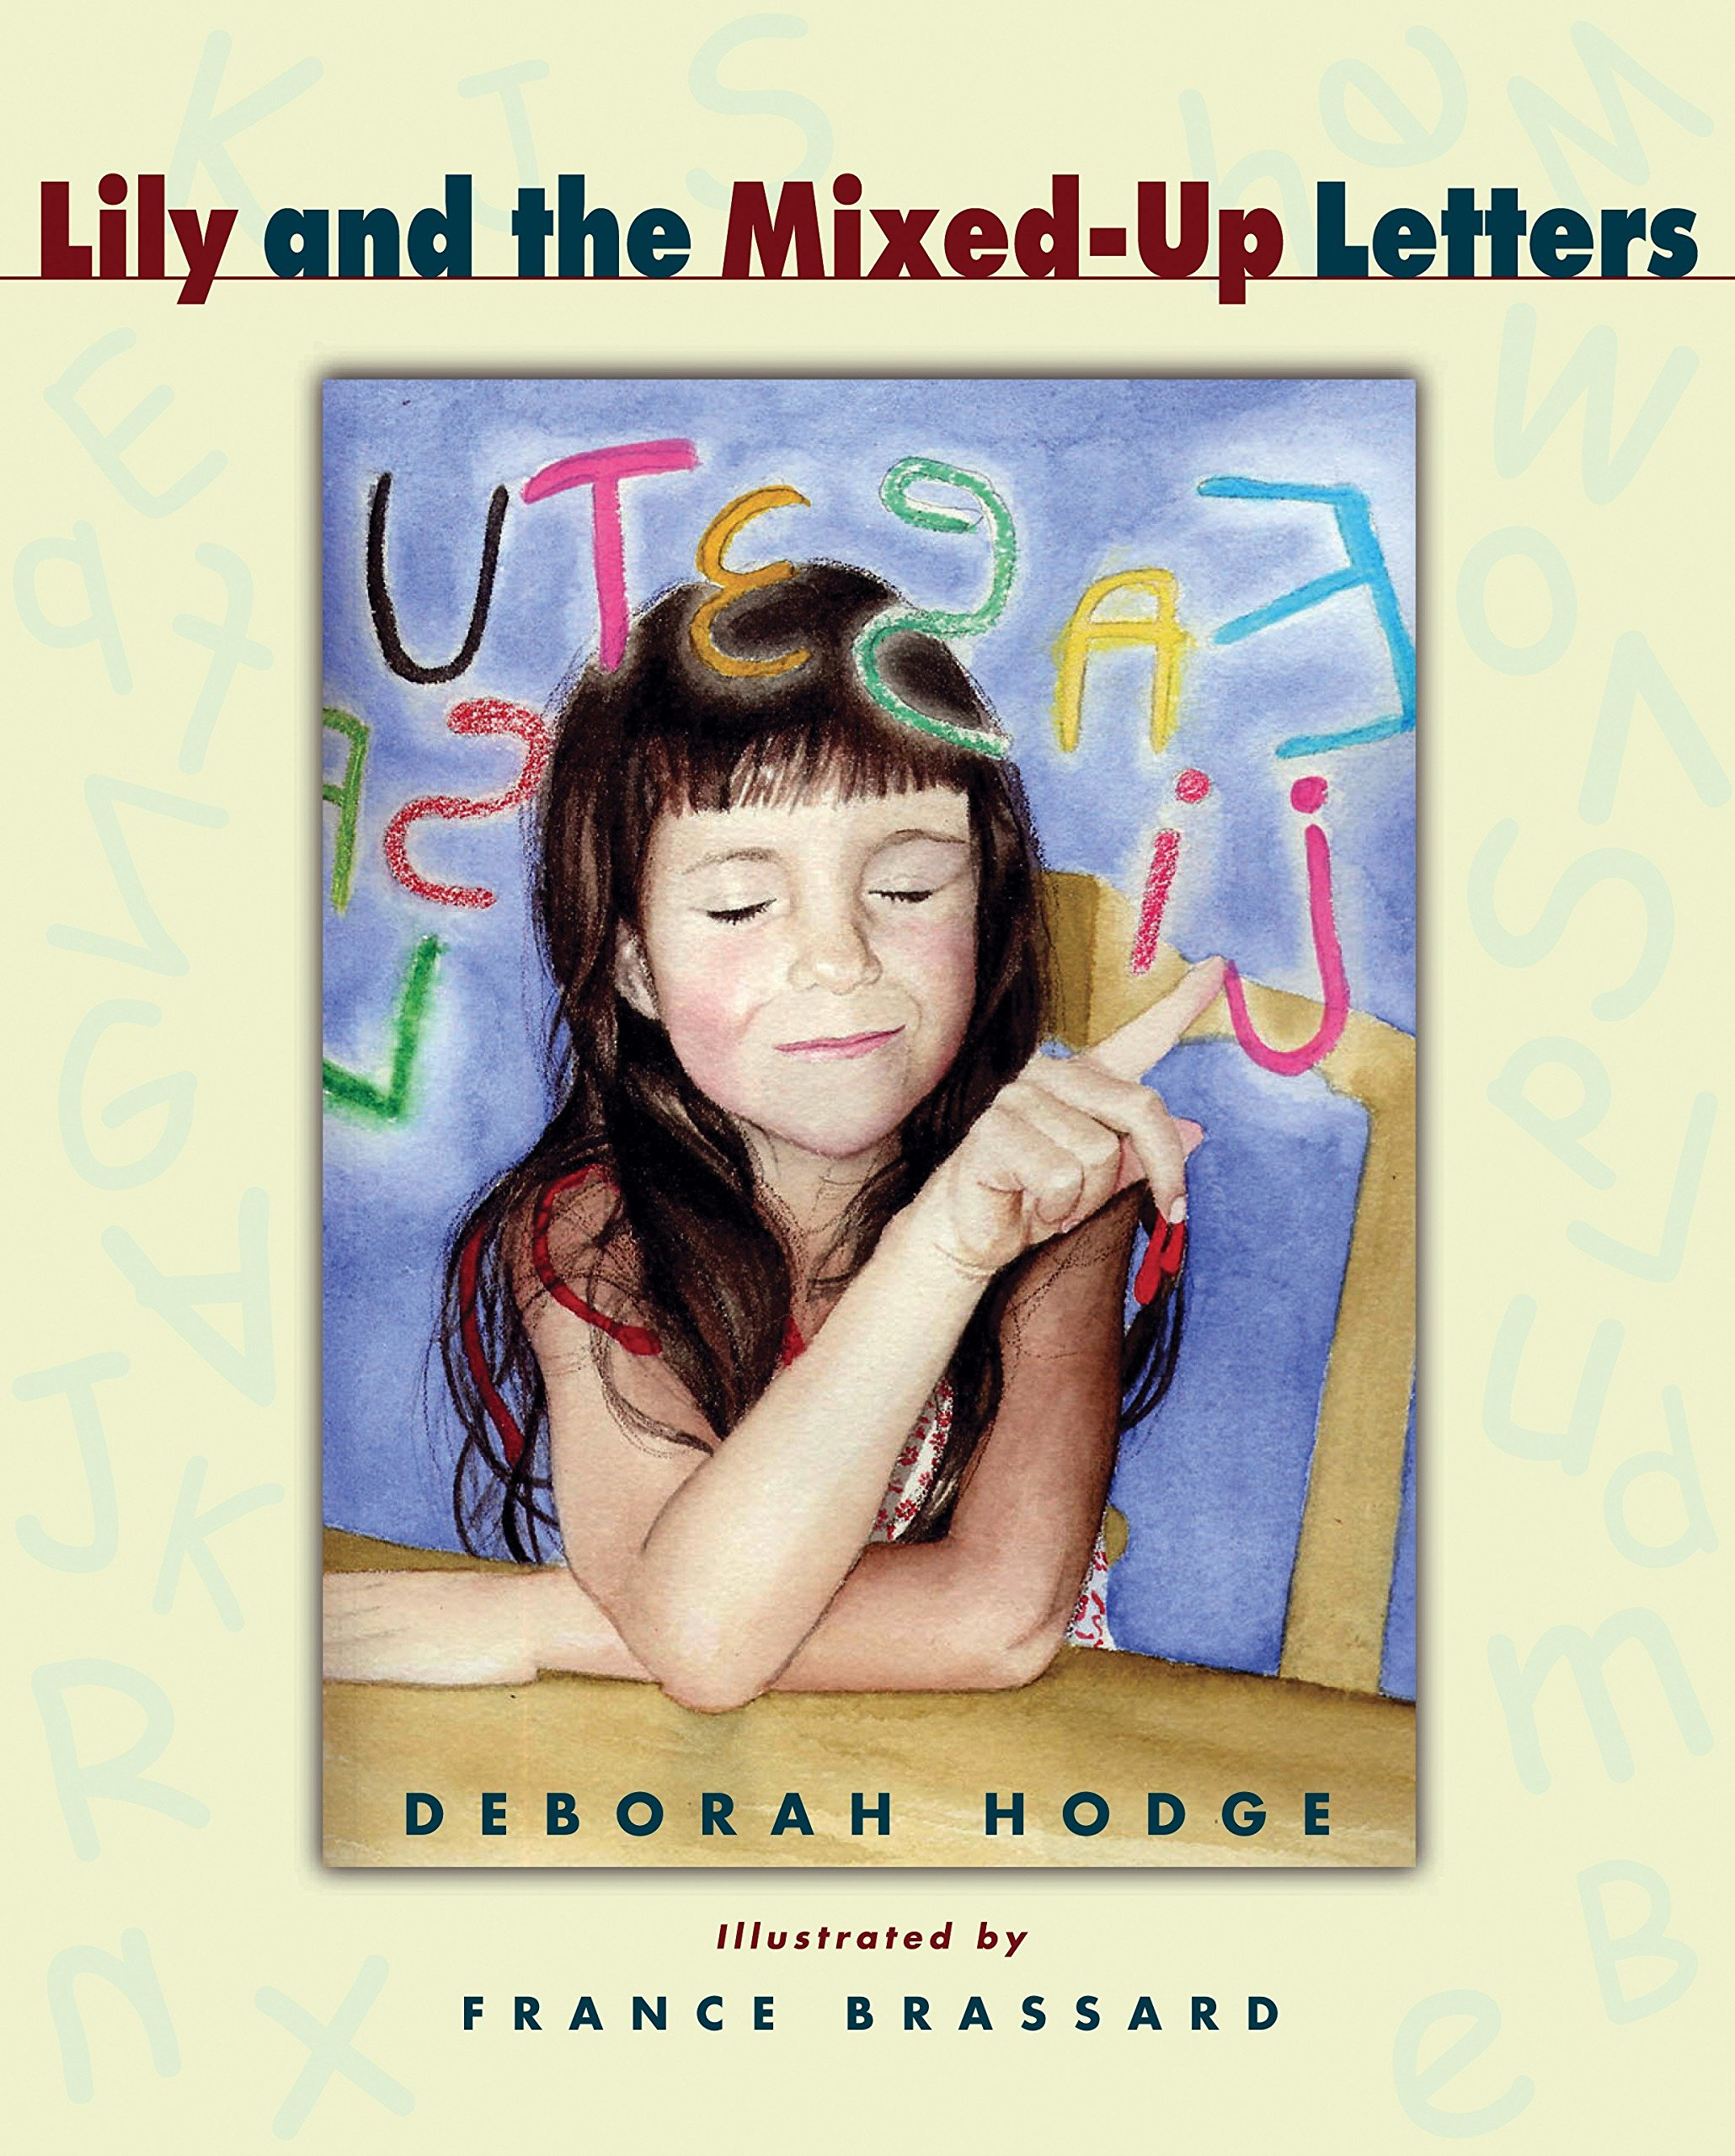 lily and the mixed up letters deborah hodge france brassard 9780887767579 amazoncom books